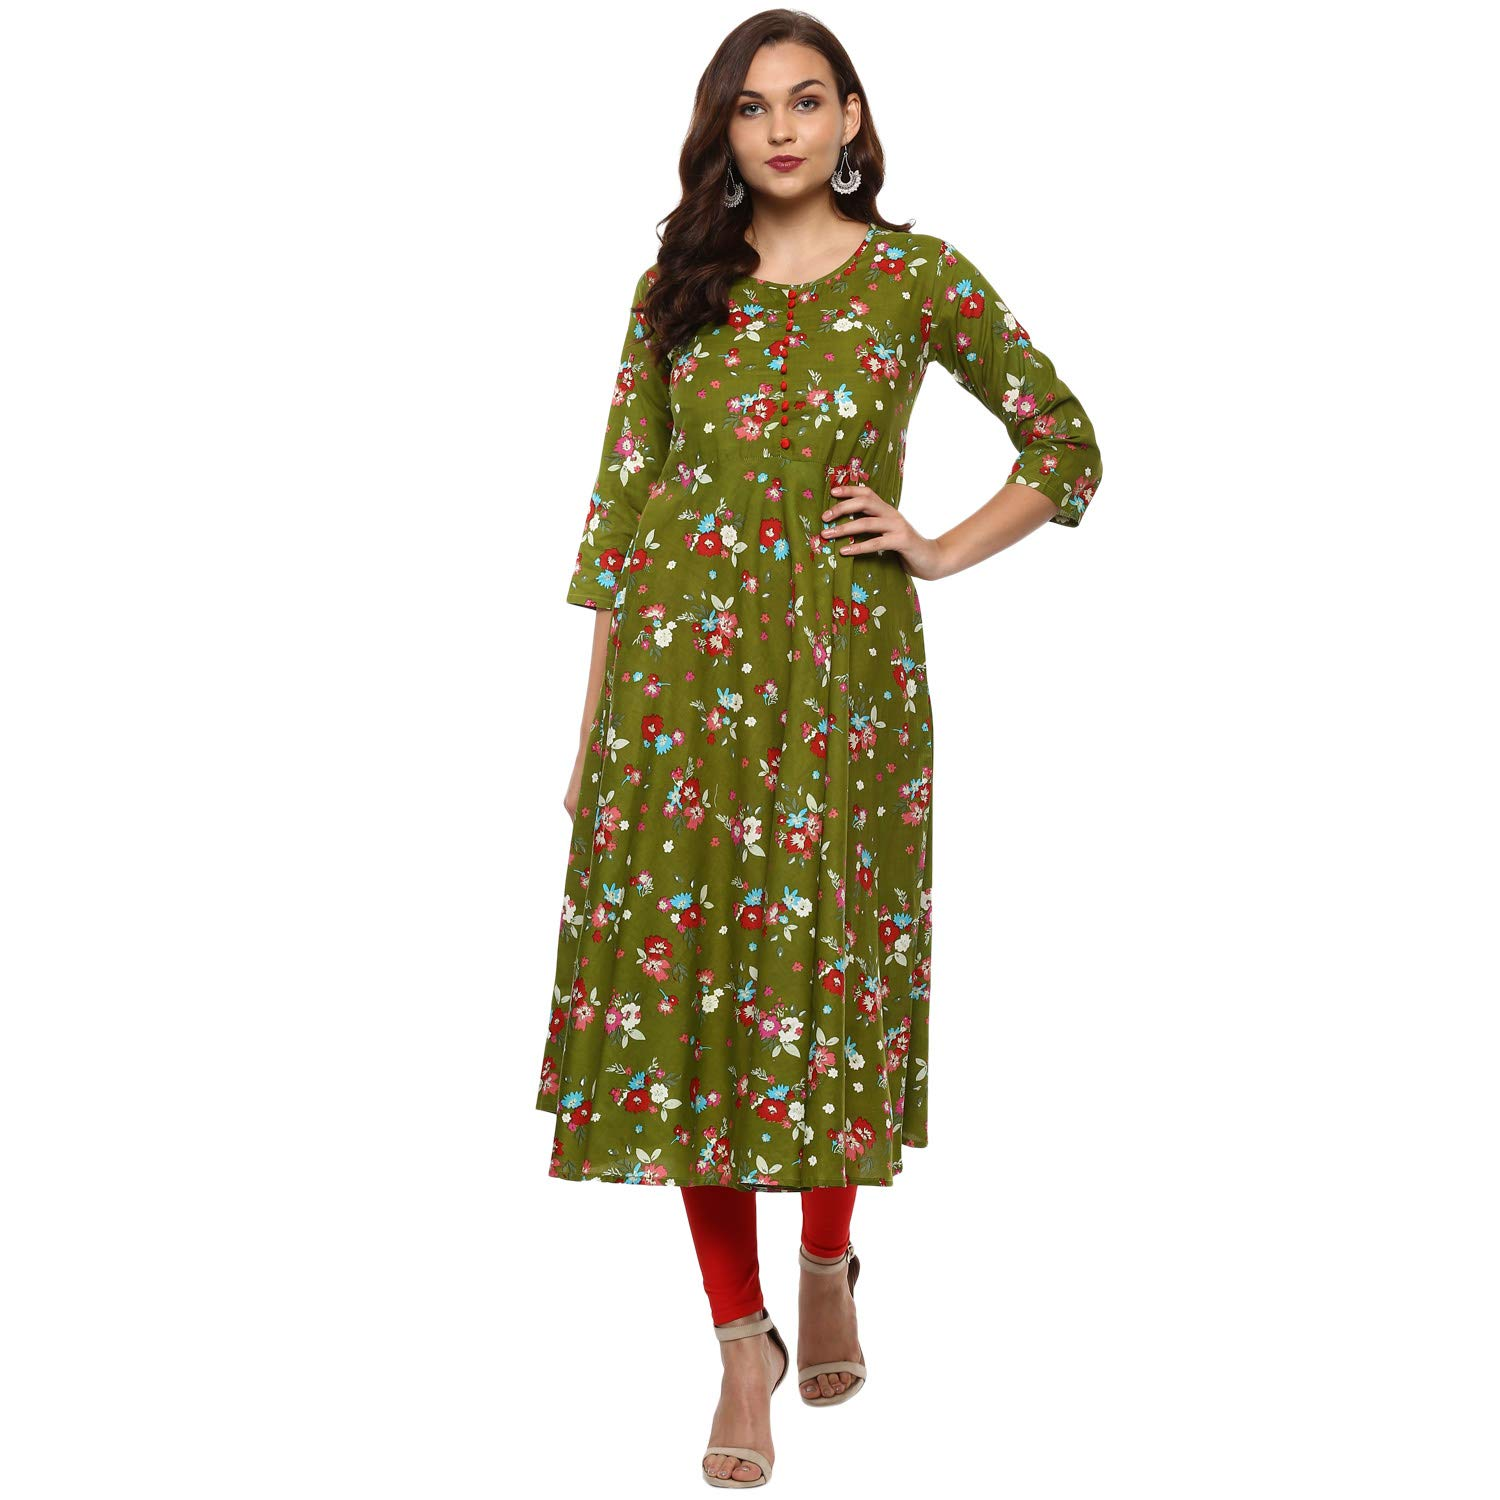 Available at Amazon: Yash Gallery Indian Tunic Tops Women's Cotton Floral Print Anarkali Kurta